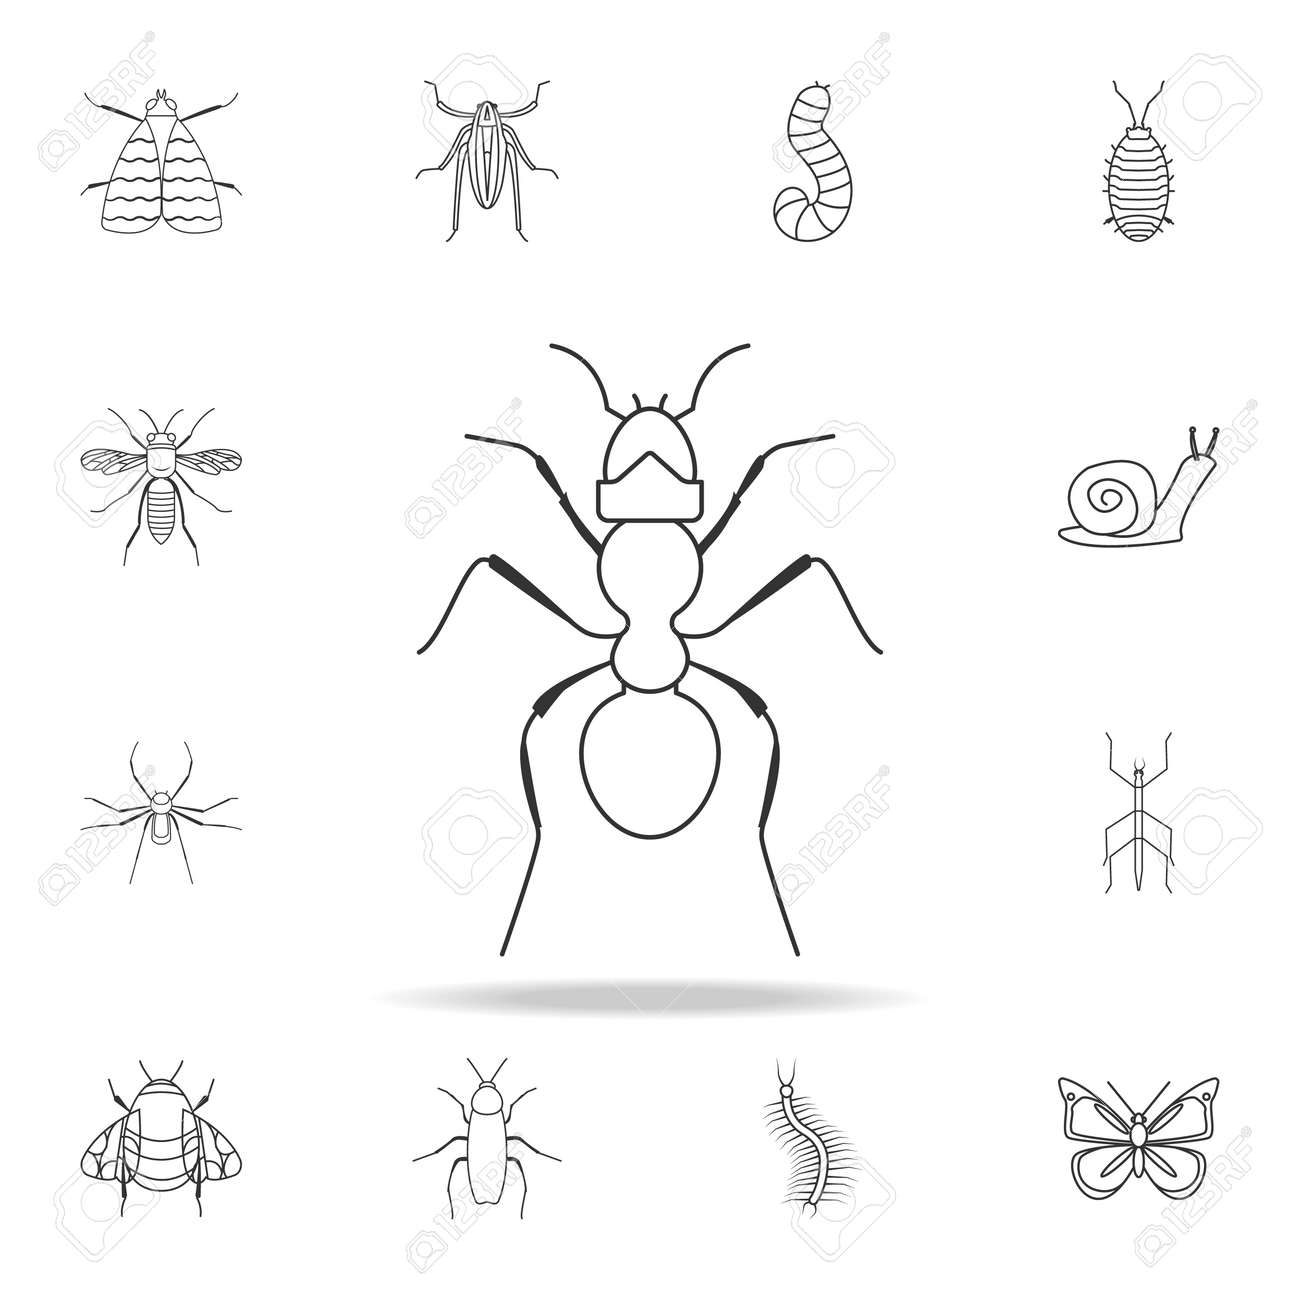 ant icon  Detailed set of insects line illustrations  Premium